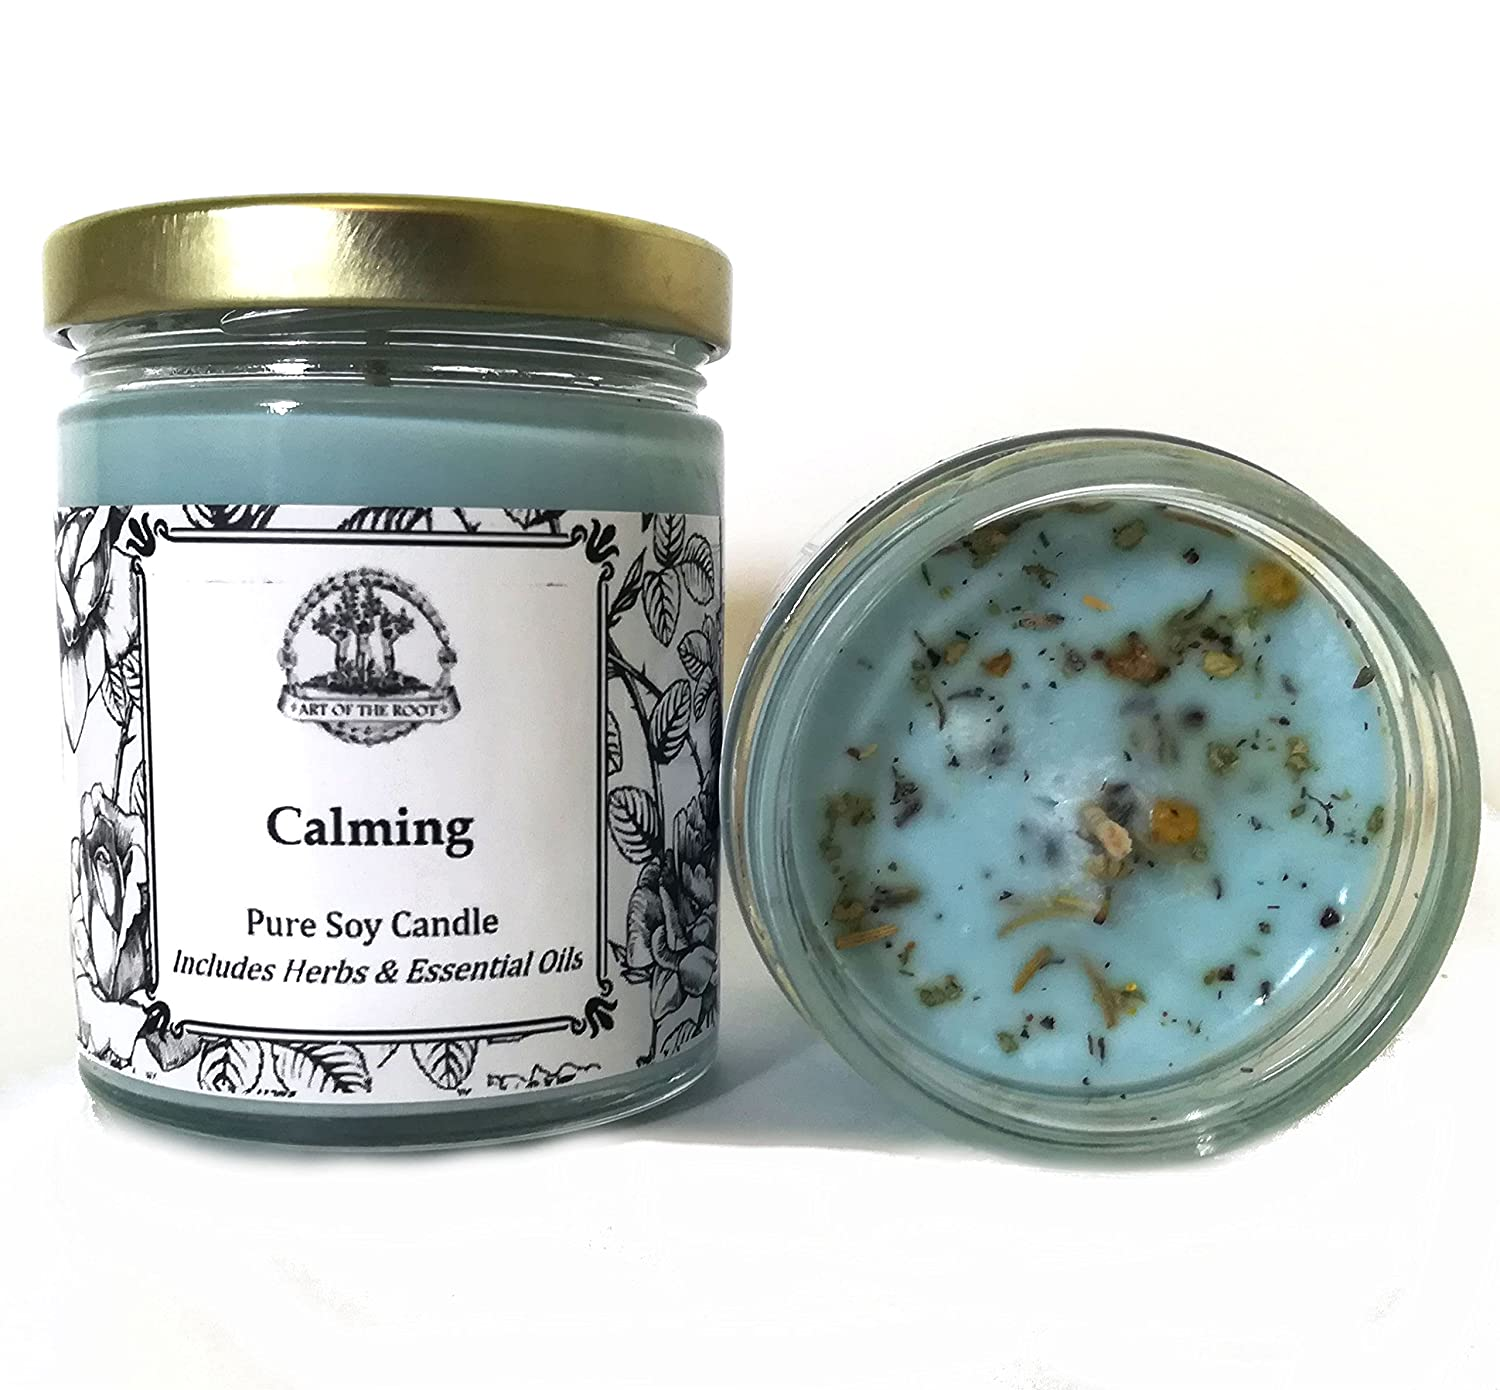 Art of the Root Calming 8 oz Soy Herbal Candle for Anxiety, Tension, Stress & Discord (Wiccan Pagan Hoodoo Conjure) Ltd.